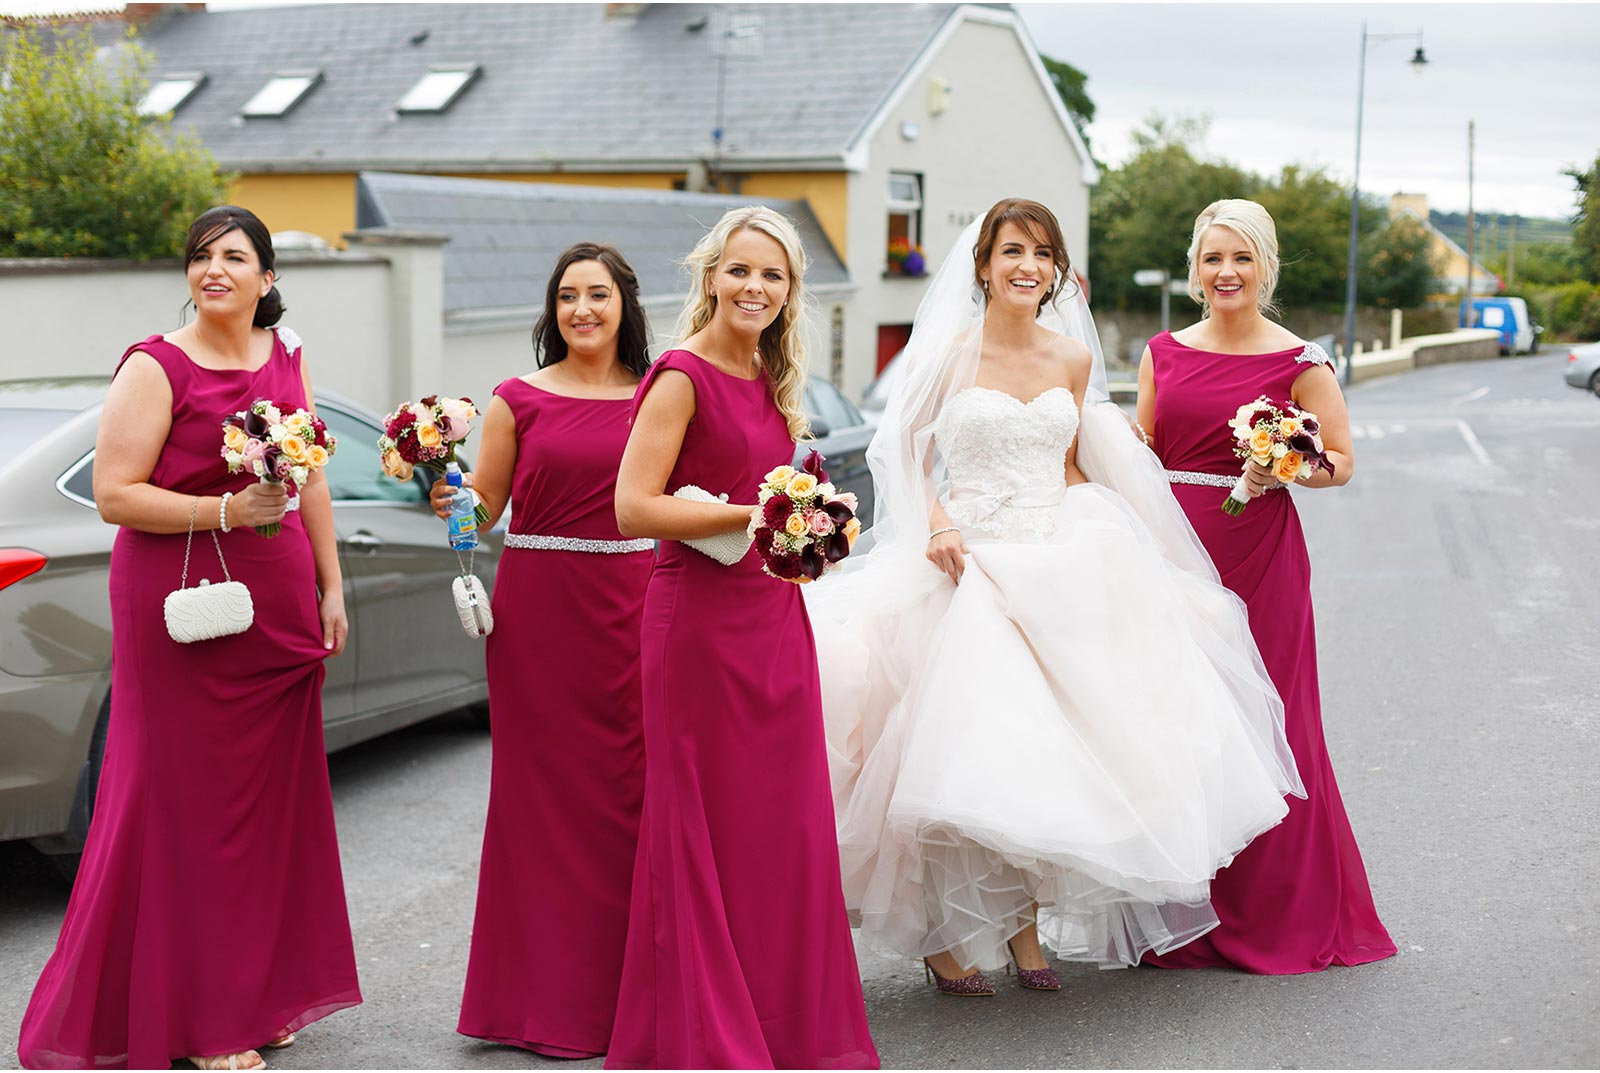 girls making their way down the street to the pub after the wedding